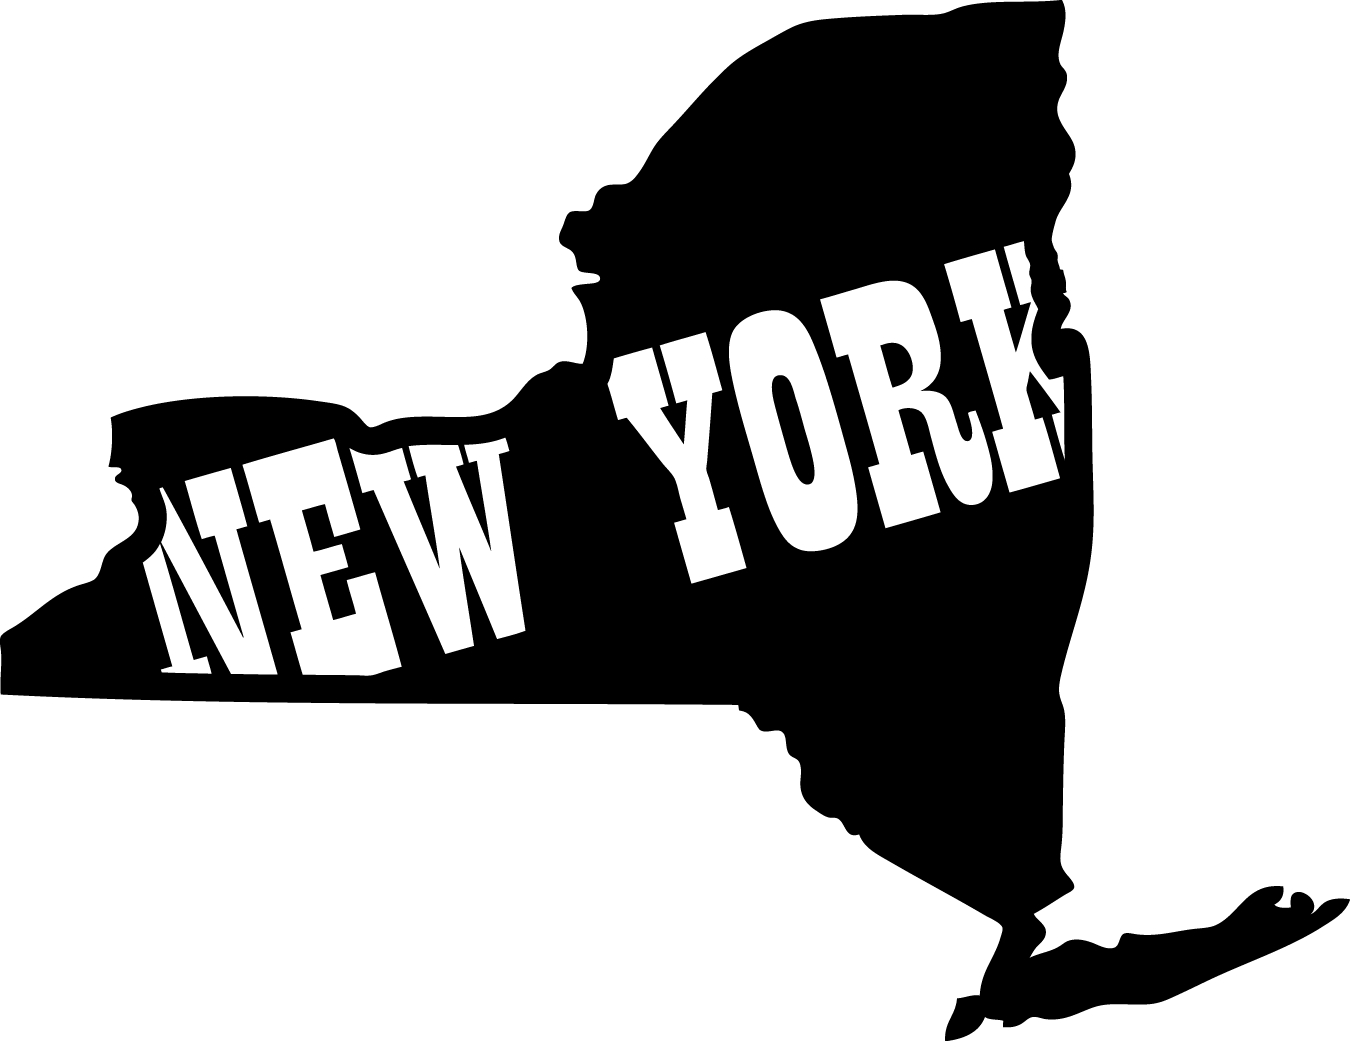 Outline Of Ny State